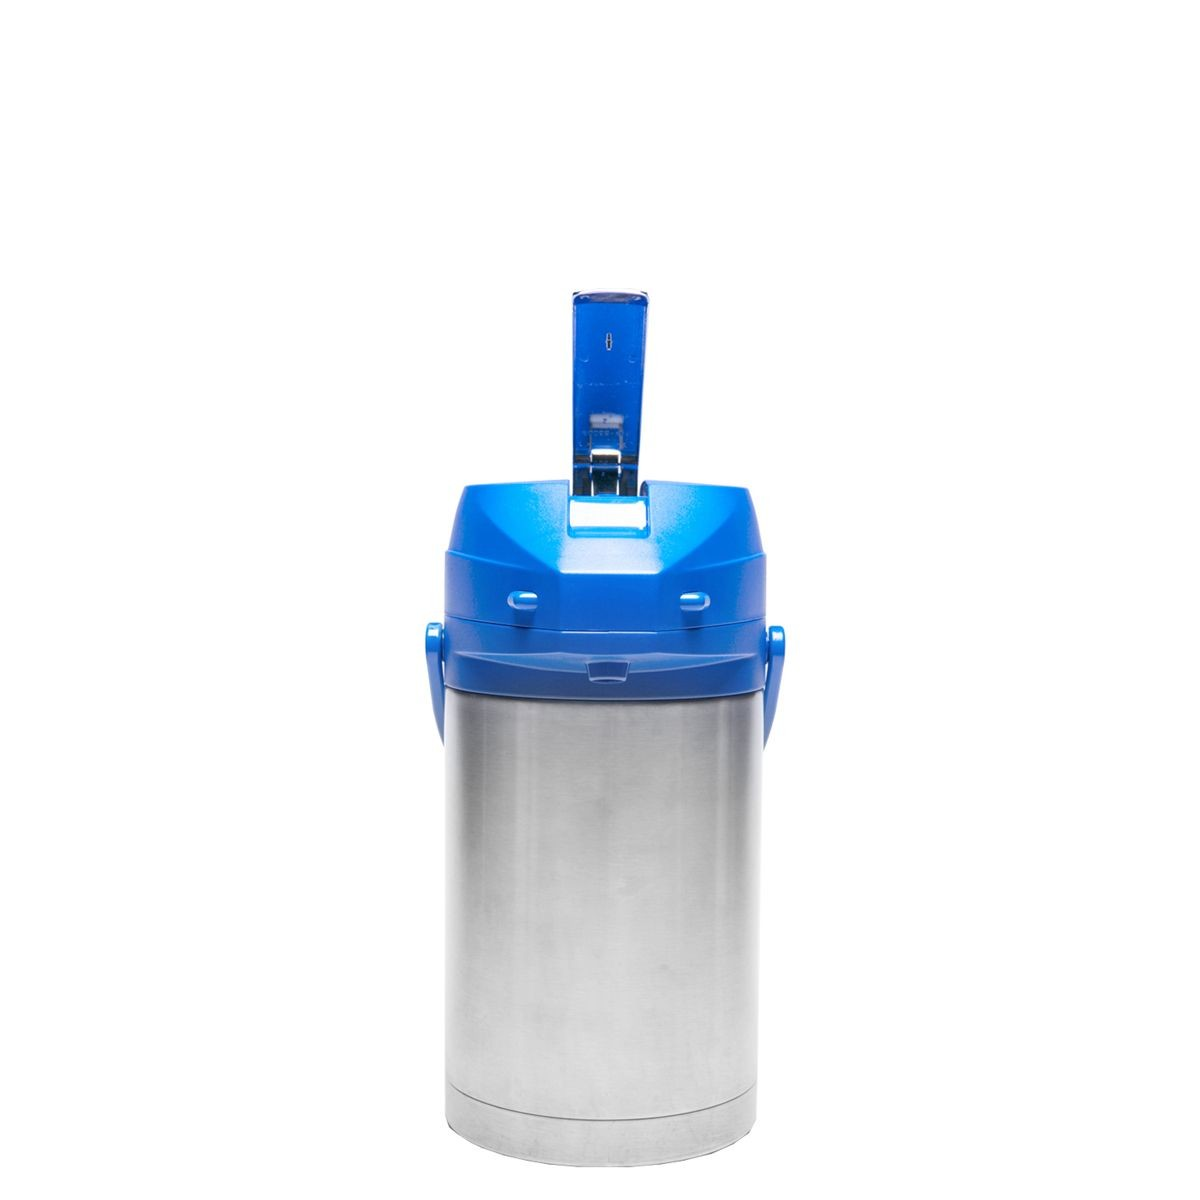 Service Ideas CTAL25BLU Blue Top Stainless Steel Lined Color Me SVAC Airpot, 2.5 Liter